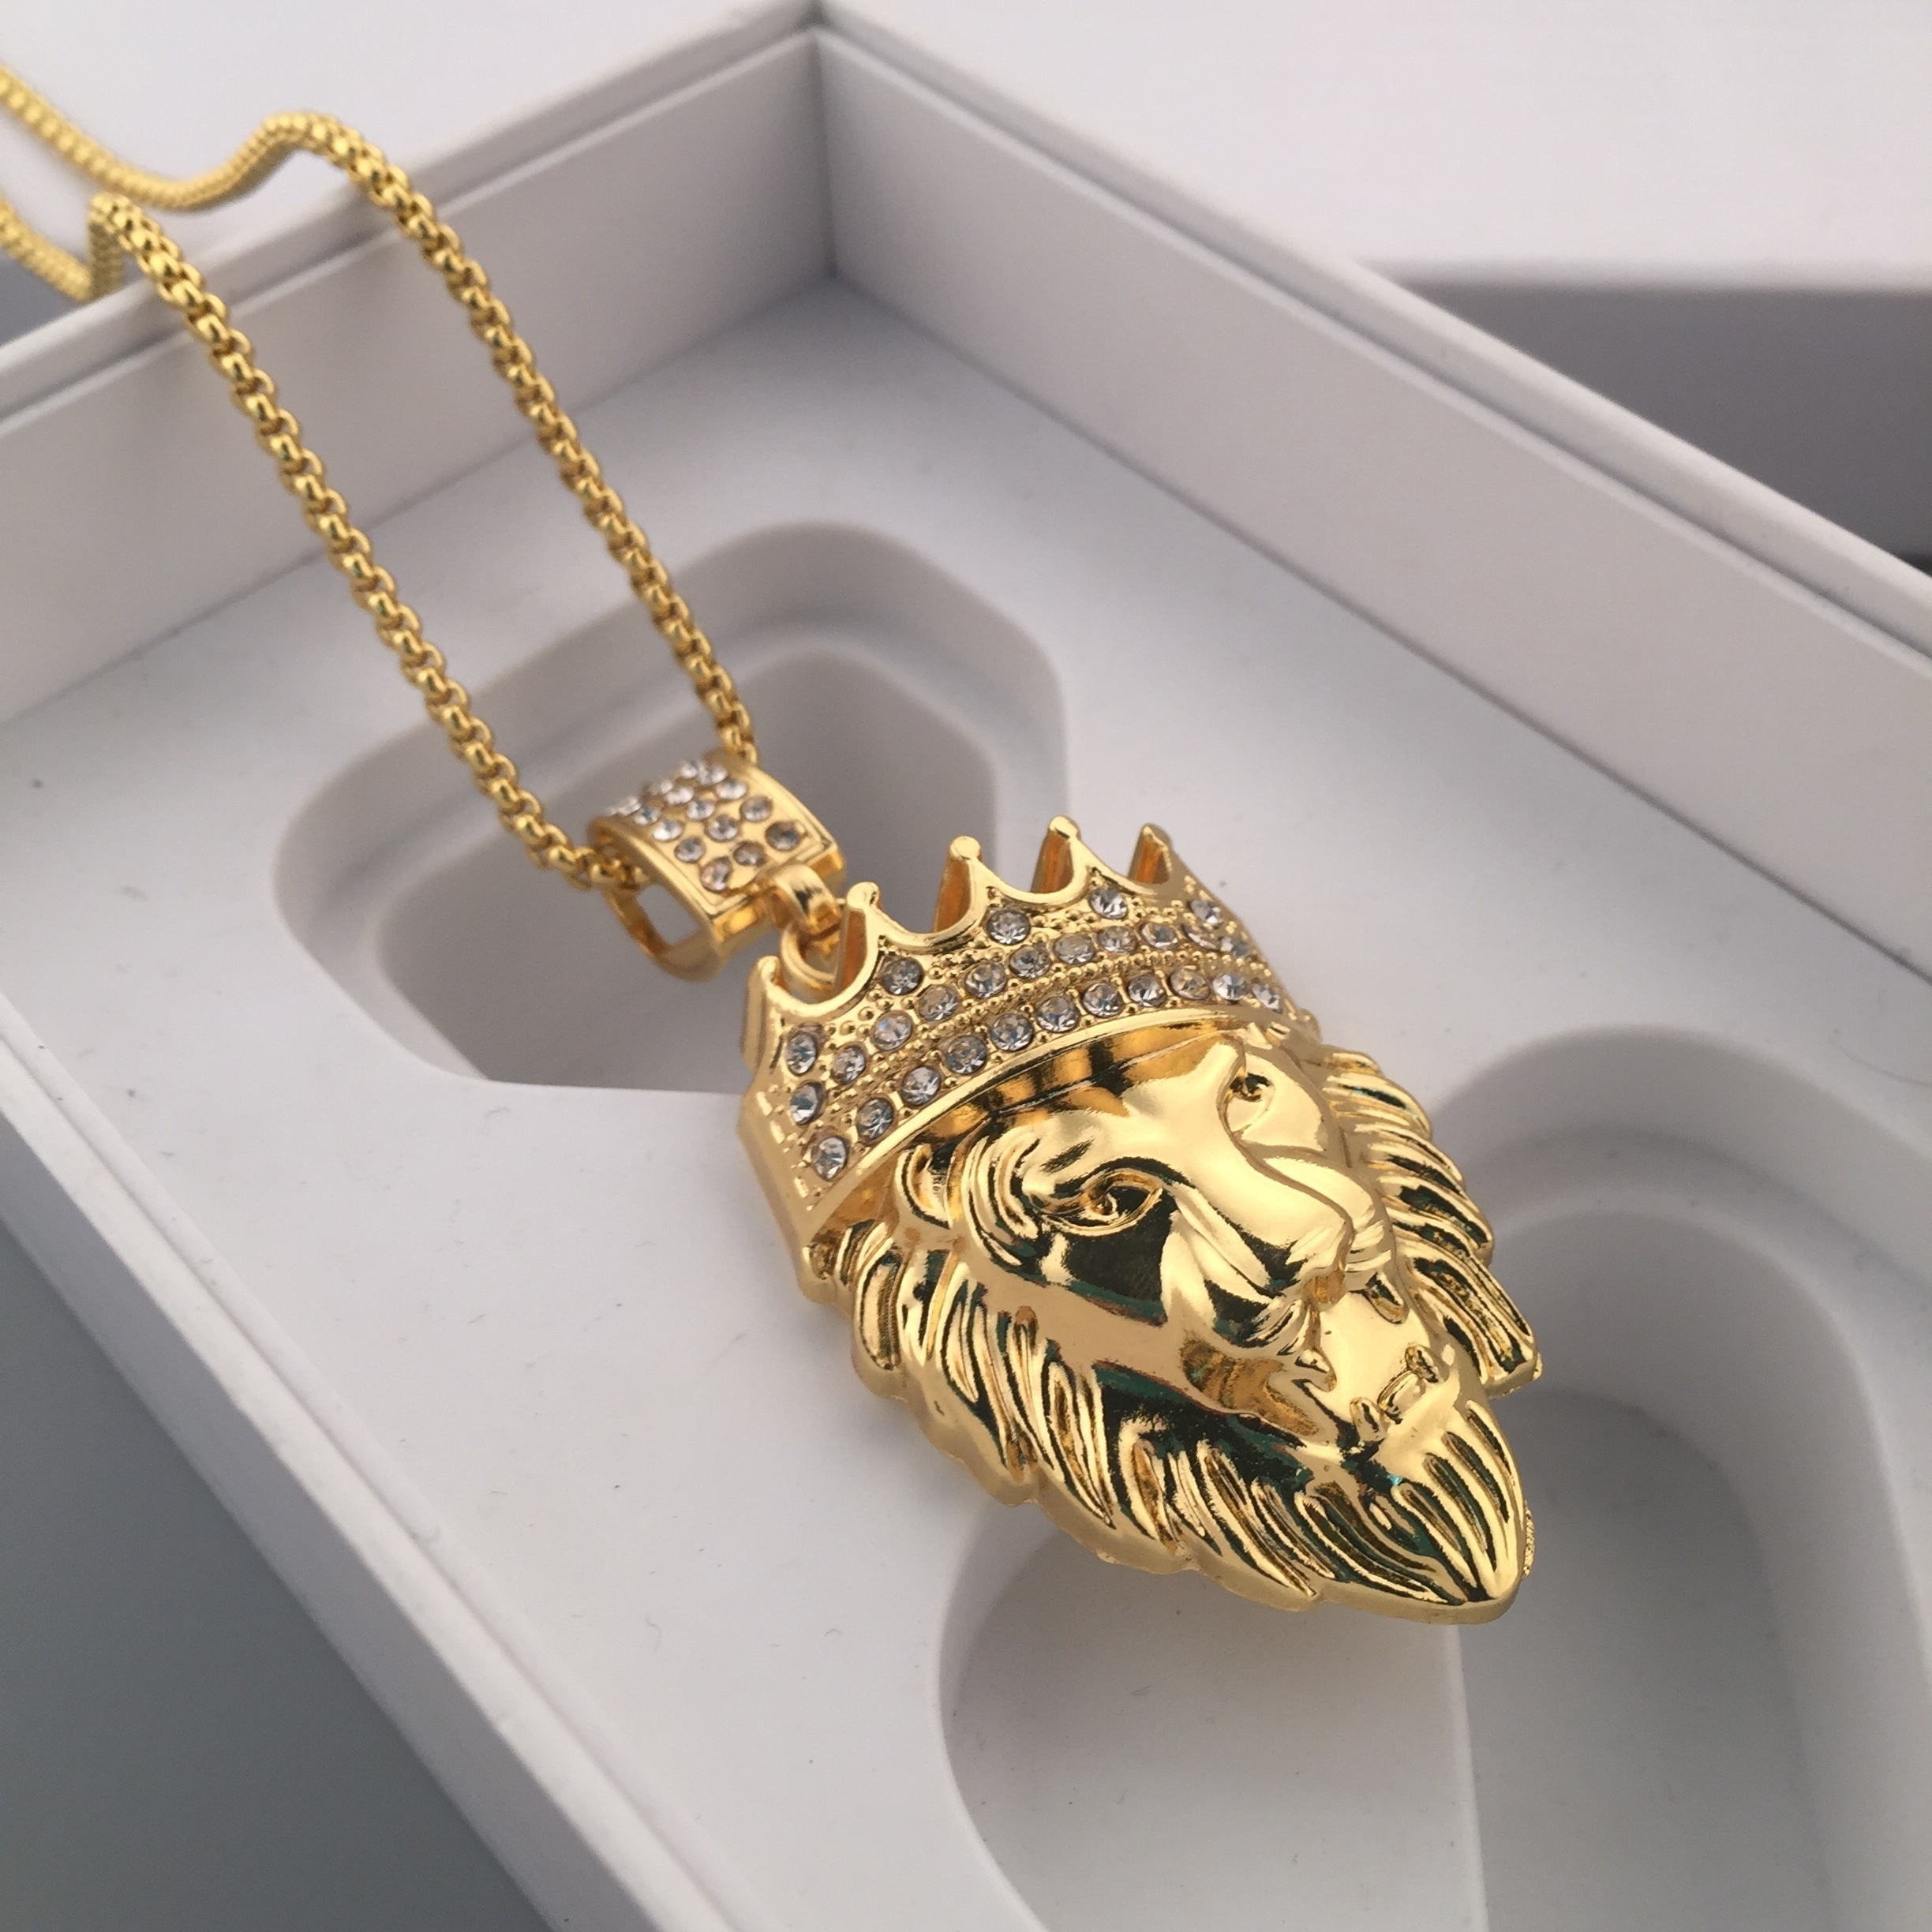 necklace image product of head lion nicole jay the pendant